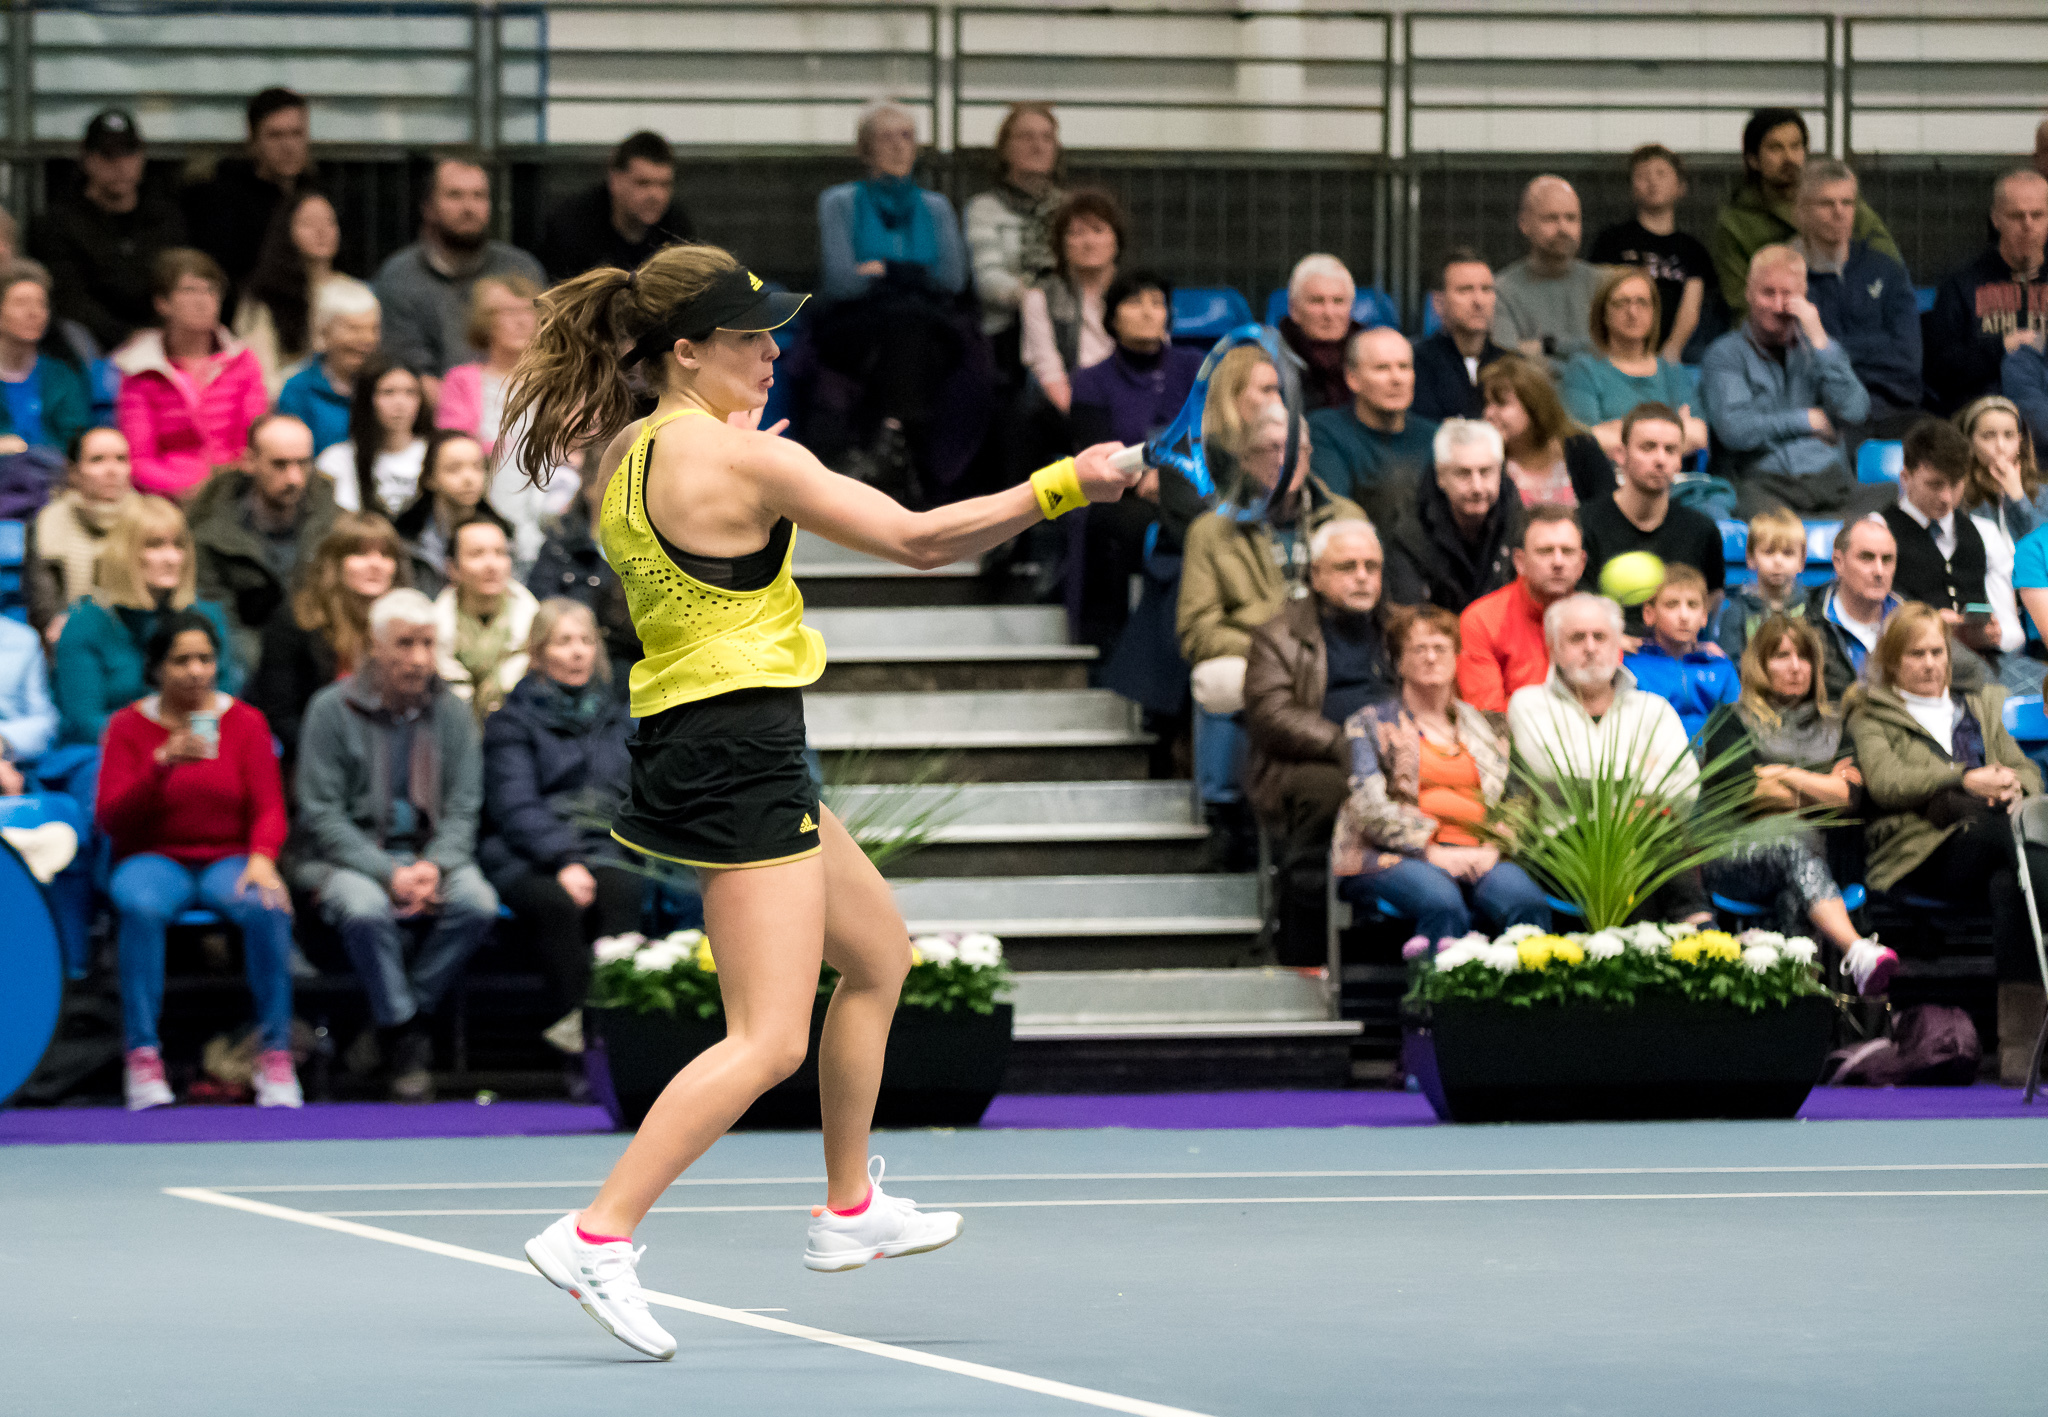 Maia Lumsden in action on finals day at Scotstoun, Picture: Tennis Scotland